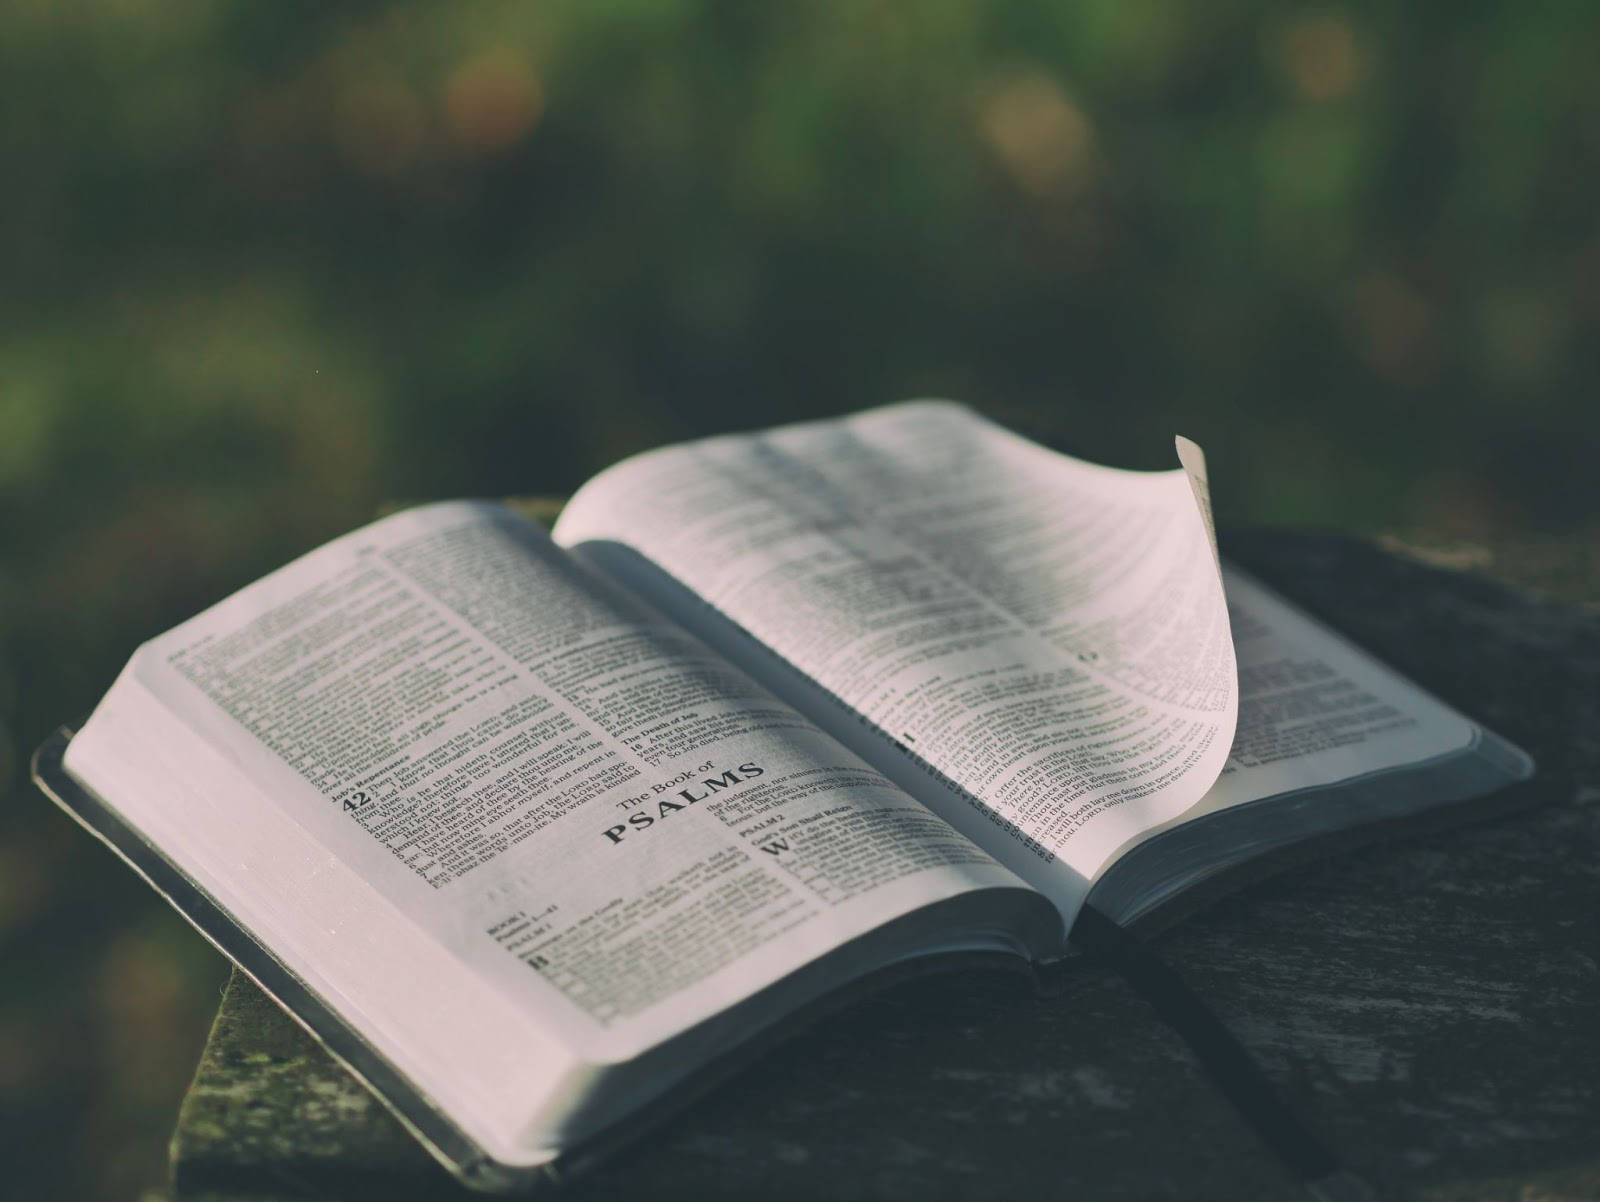 Bible opened to the Book of Psalms